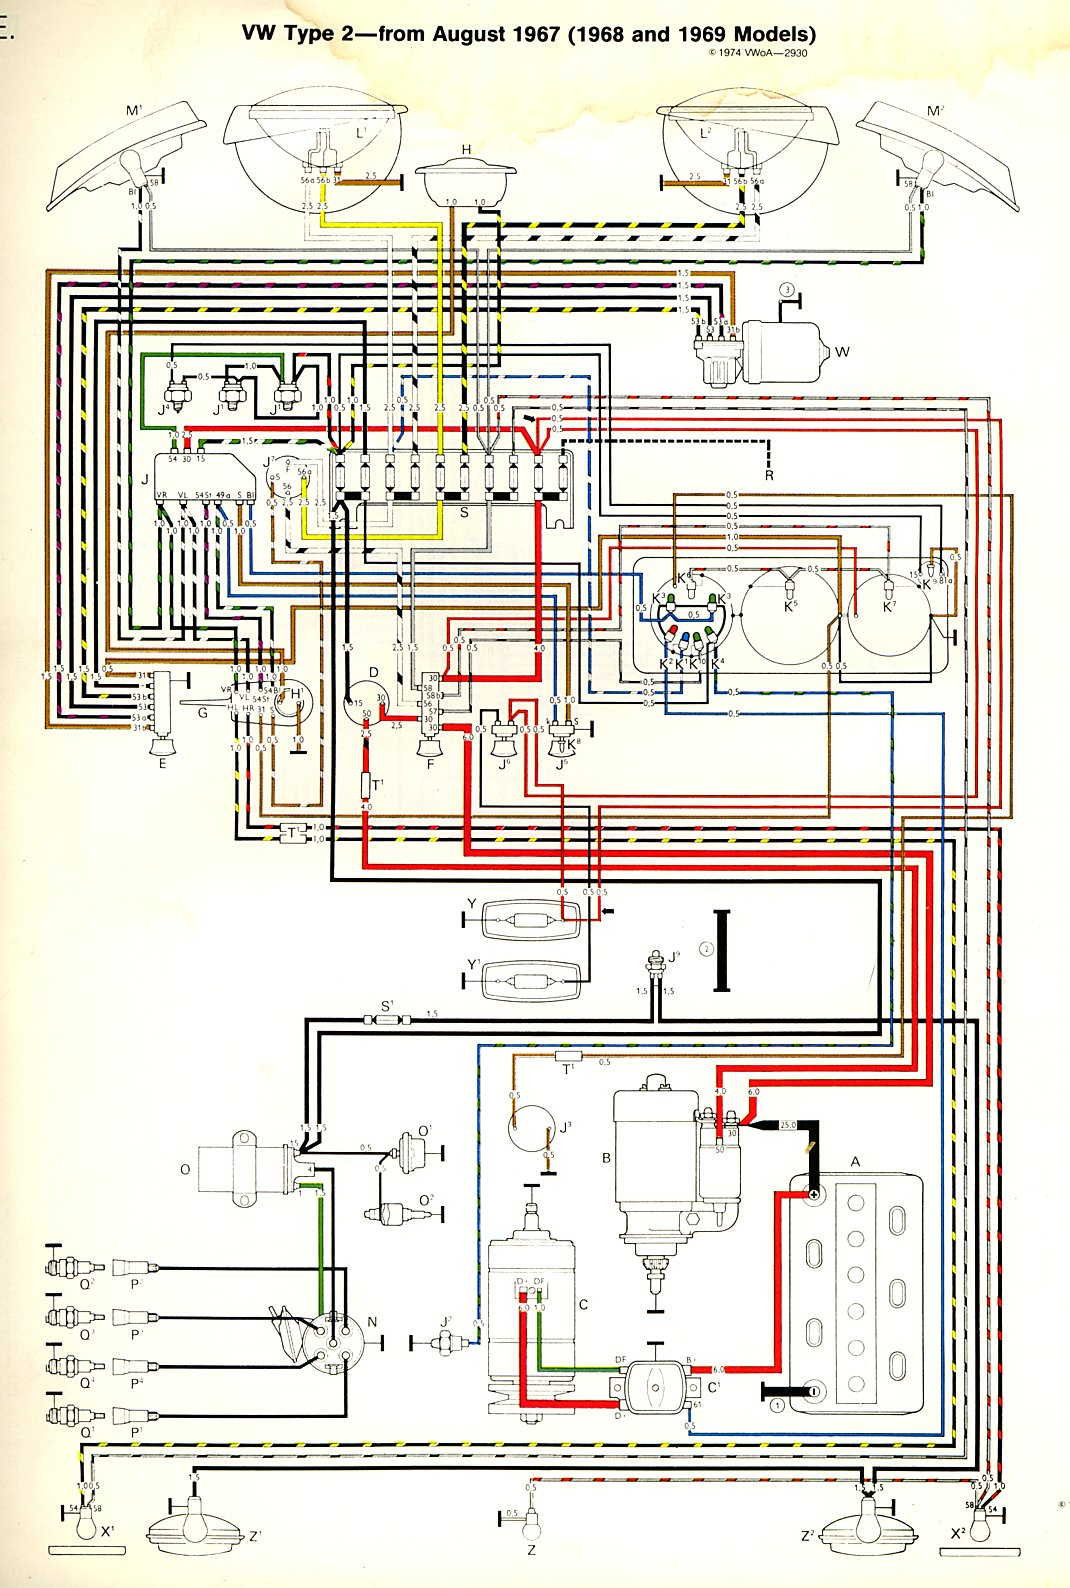 baybus_6869a 1968 69 bus wiring diagram thegoldenbug com 1971 vw bus wiring diagram at bayanpartner.co